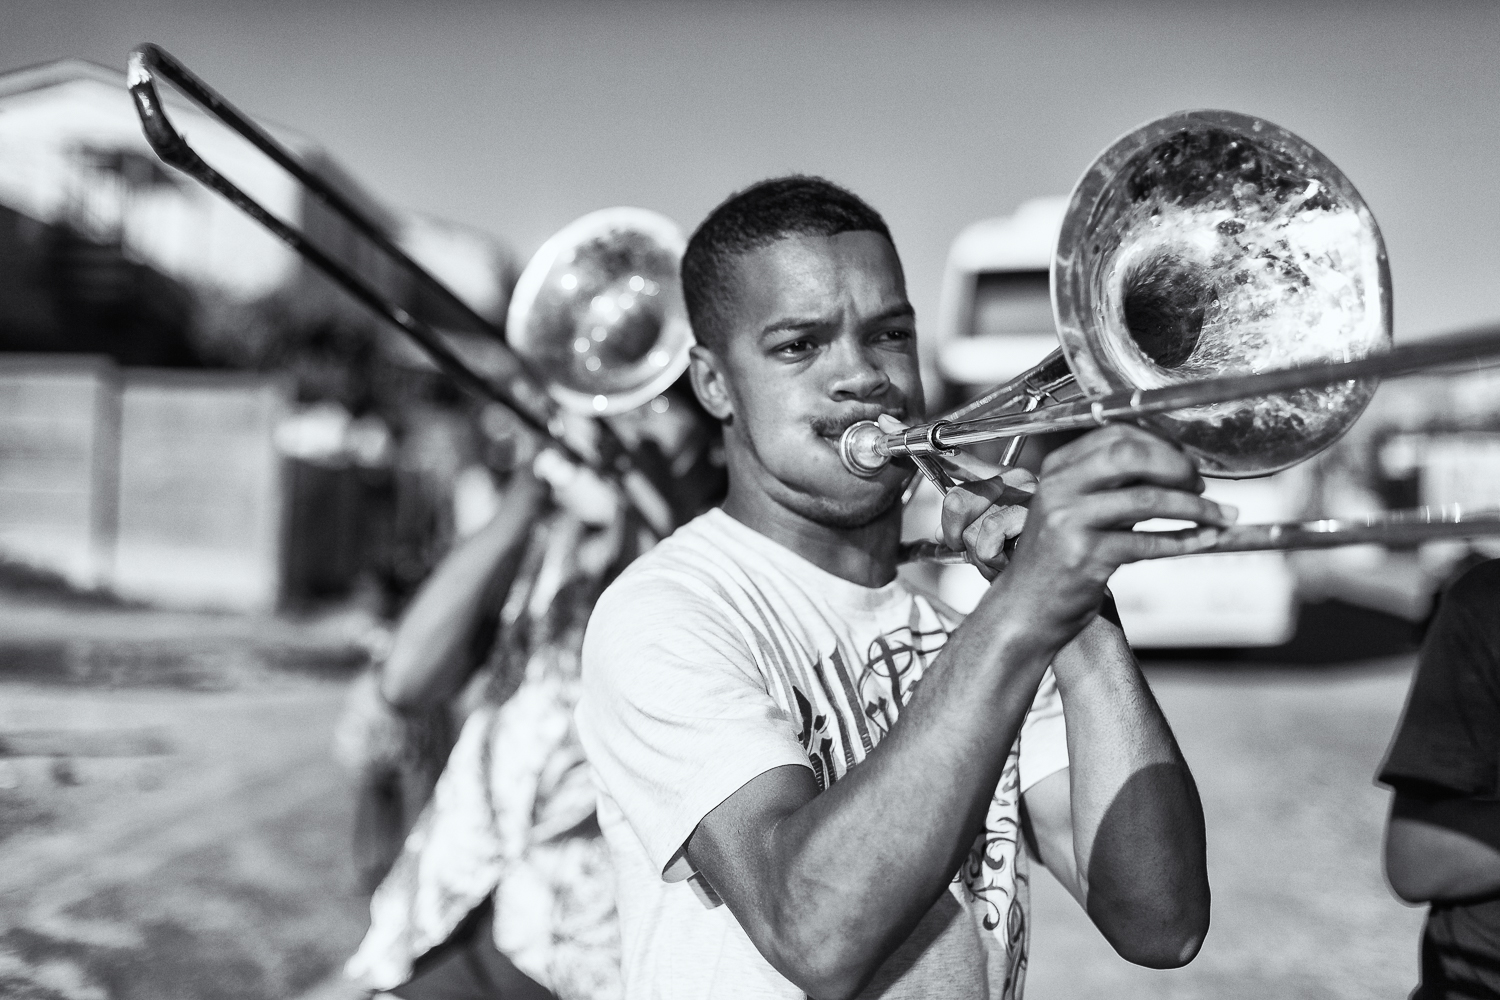 Trombonist in the Brass Marching Band